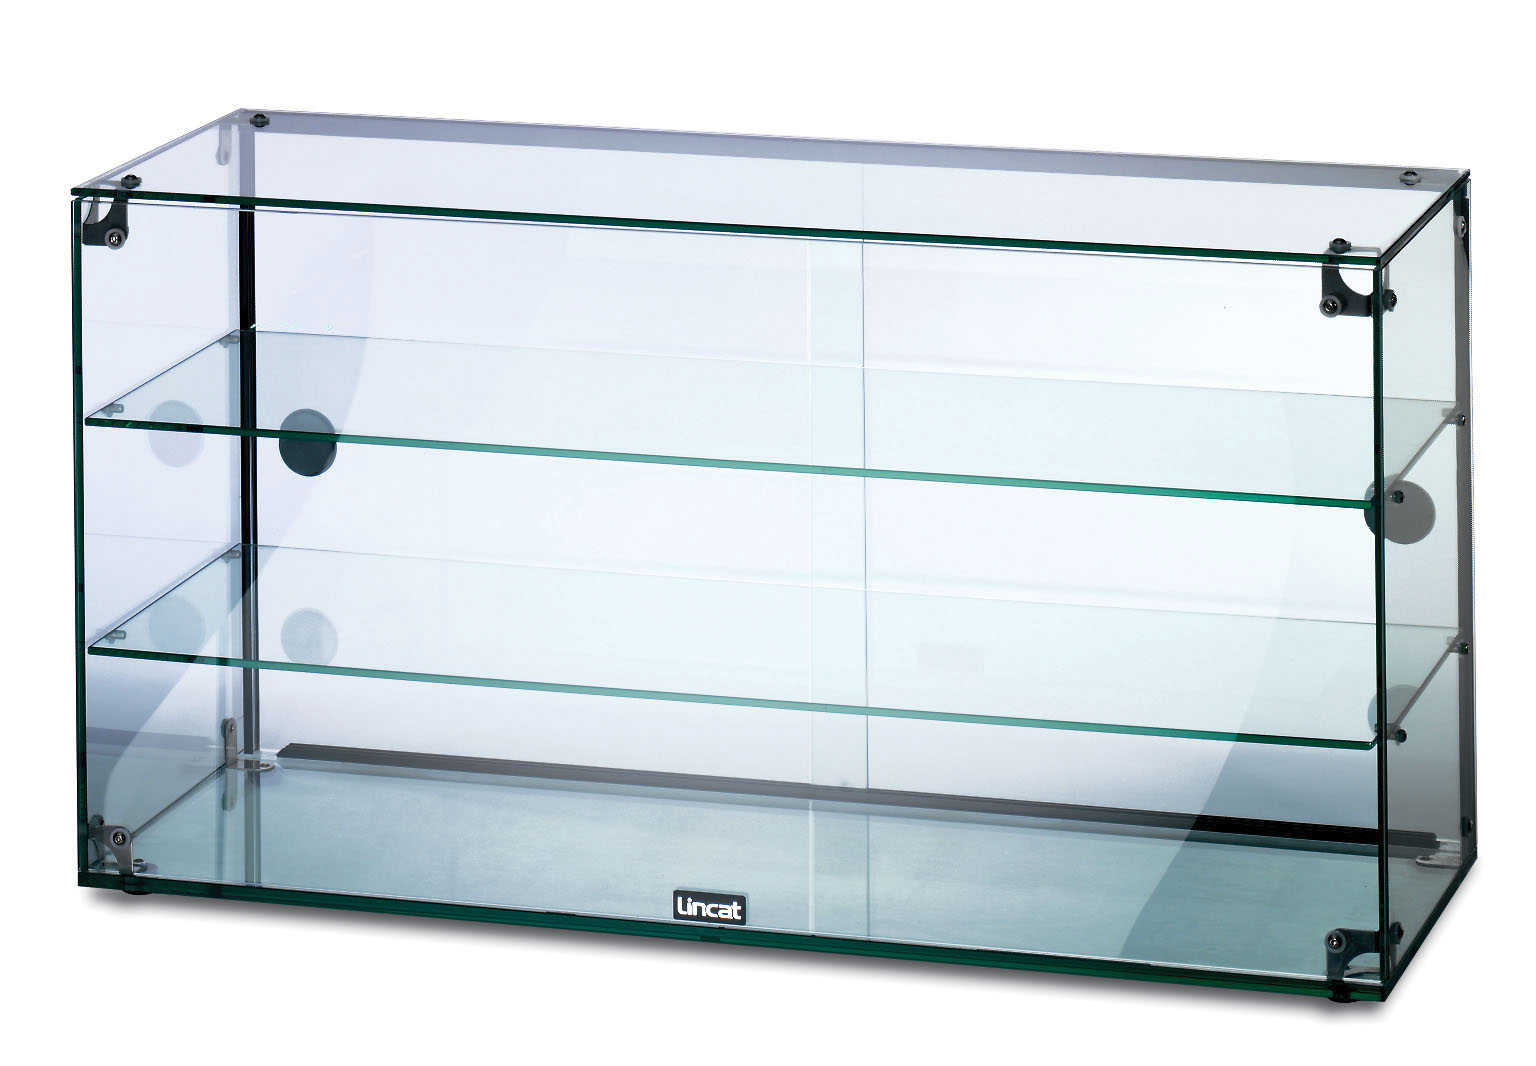 High Quality Seal GC39D Glass Display Cabinet. Lincat_GC39D_Gla_4fc36e5a375e3  Lincat_GC39D_Gla_4fc36e5a375e3